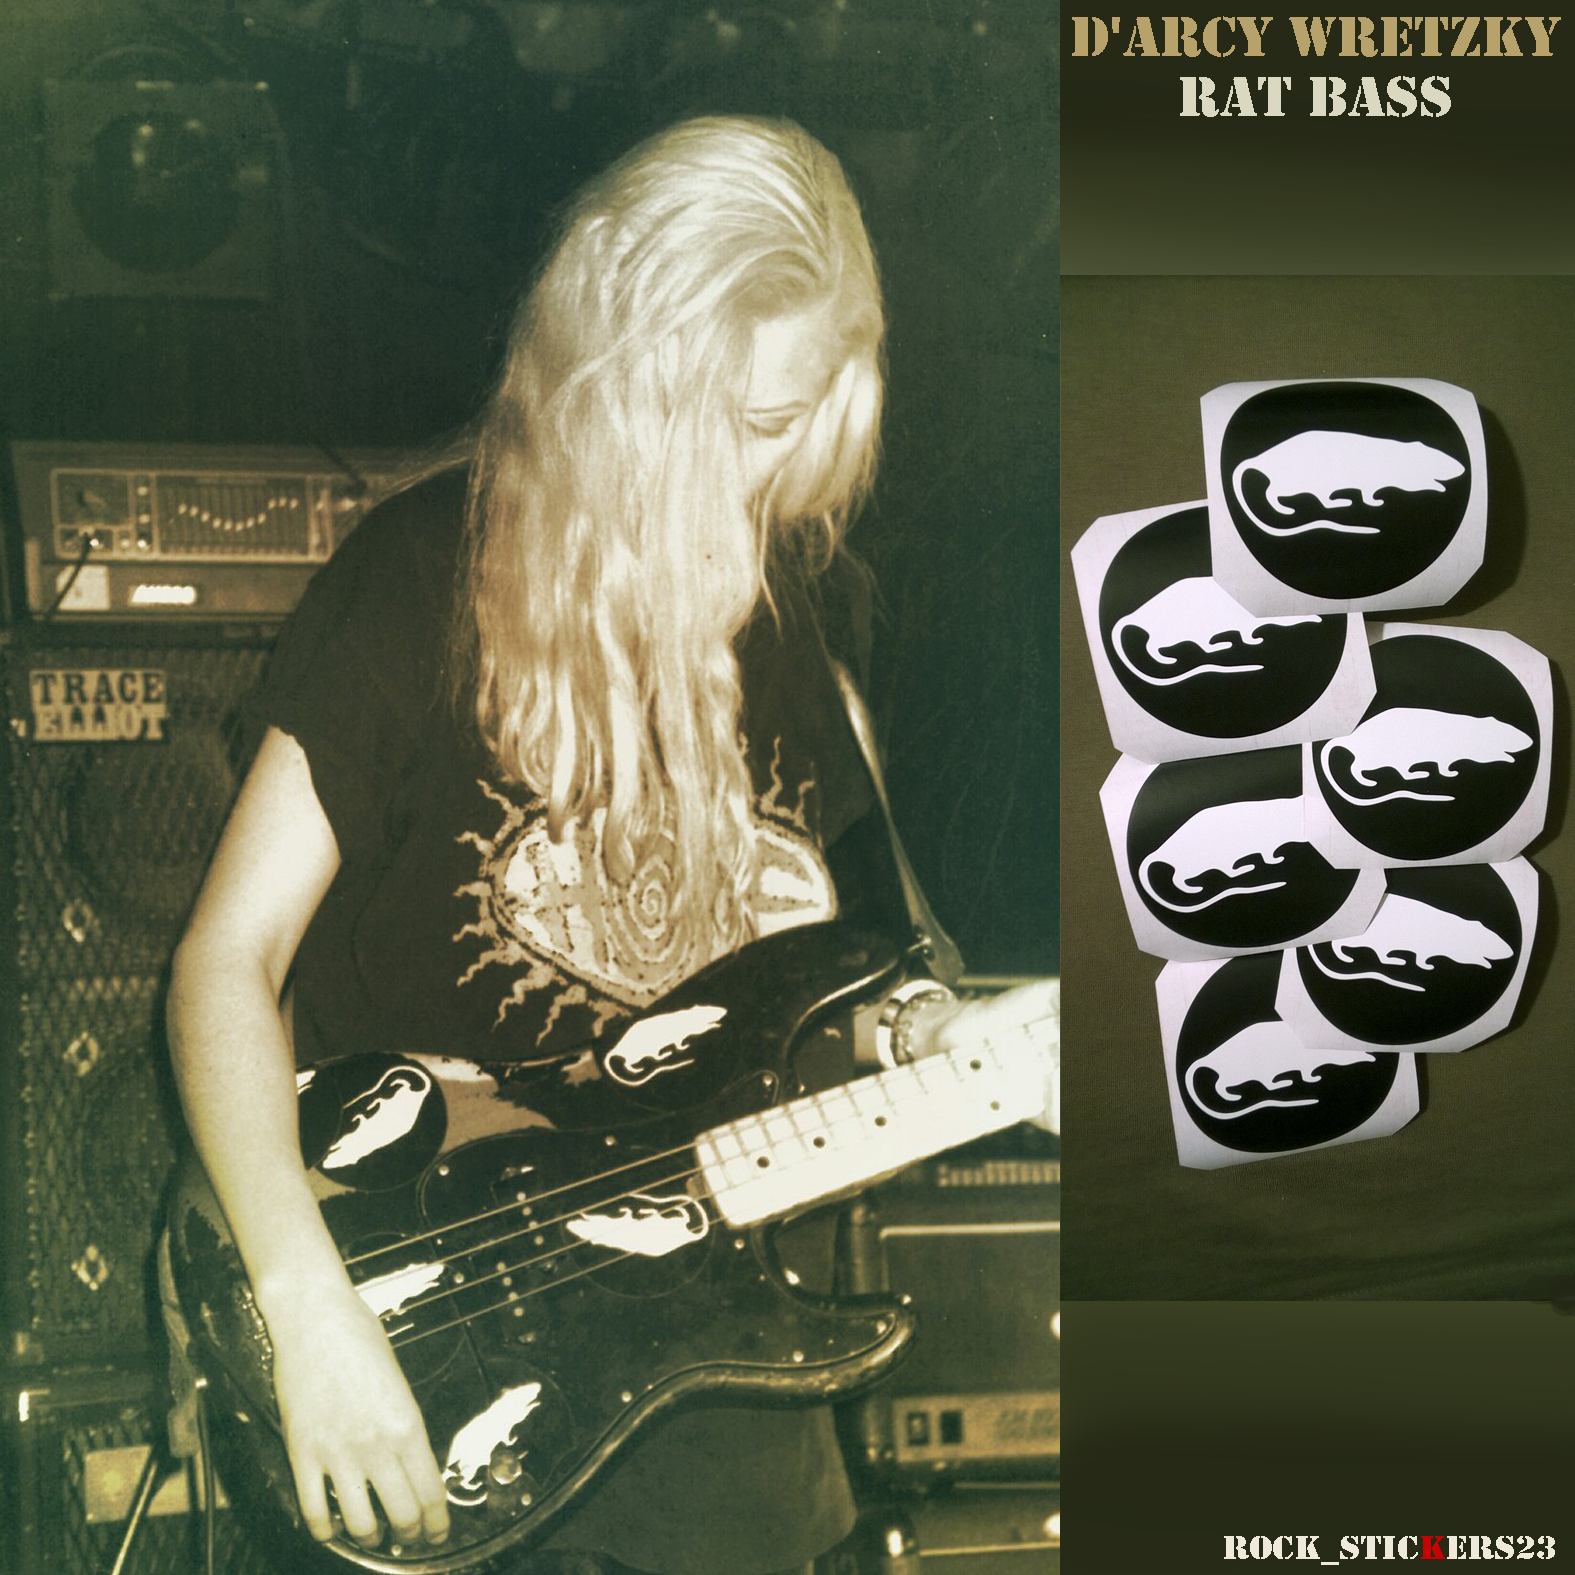 stickers replica d'arcy wretzky